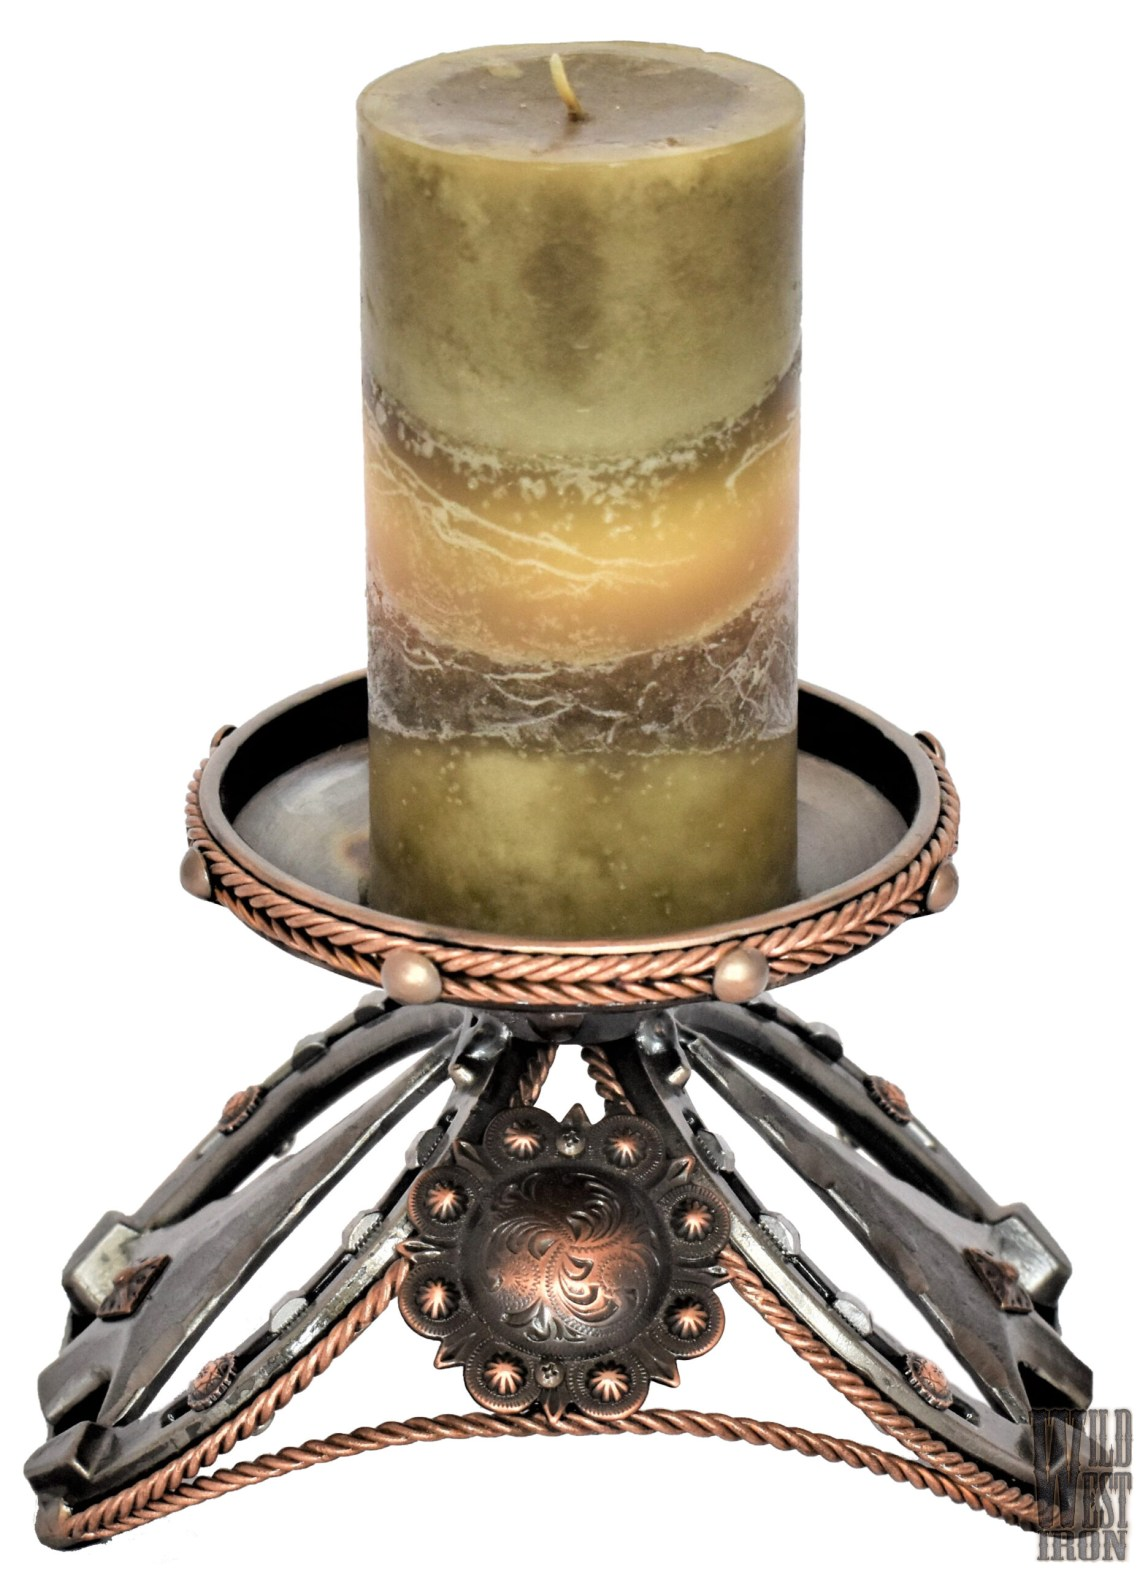 Arrowhead and Copper Candle Holder View One